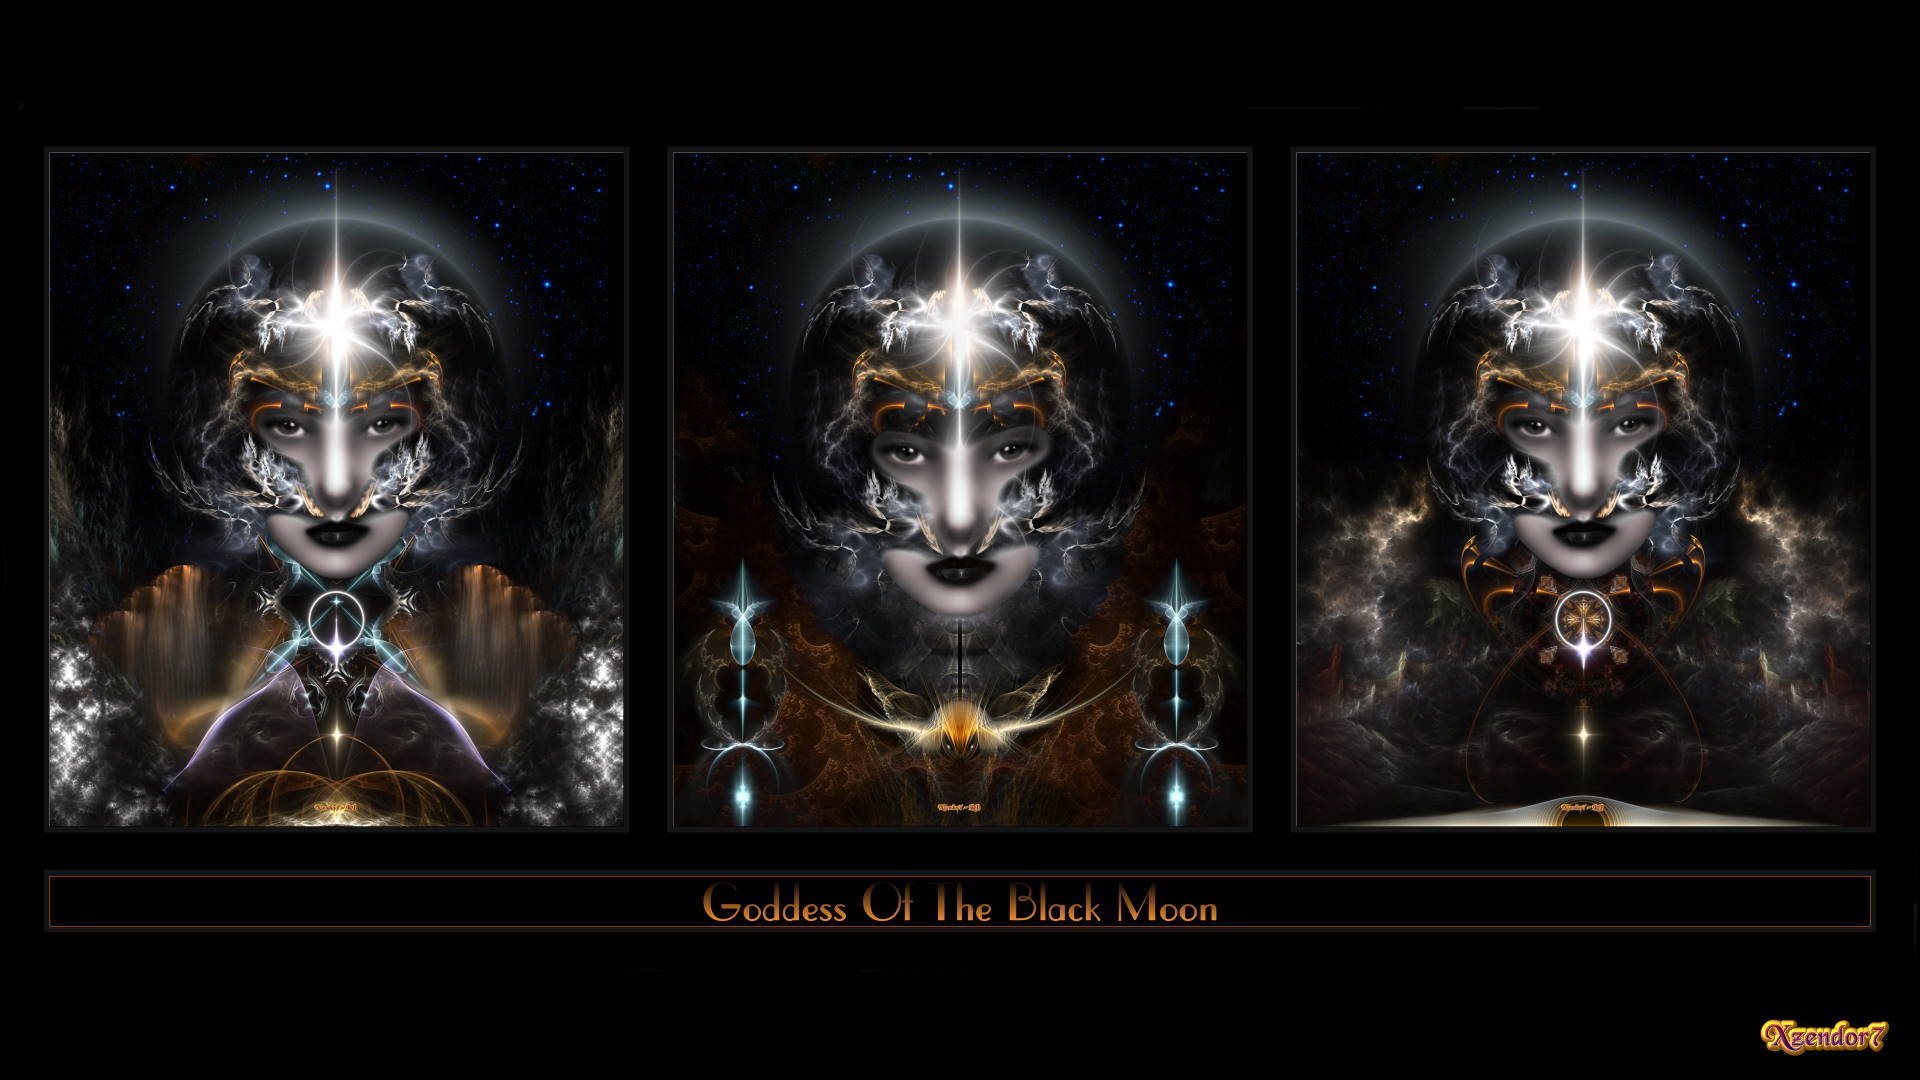 1920x1080 random images Triple Goddess Of The Black Moon Fractal Art Composition HD  wallpaper and background photos